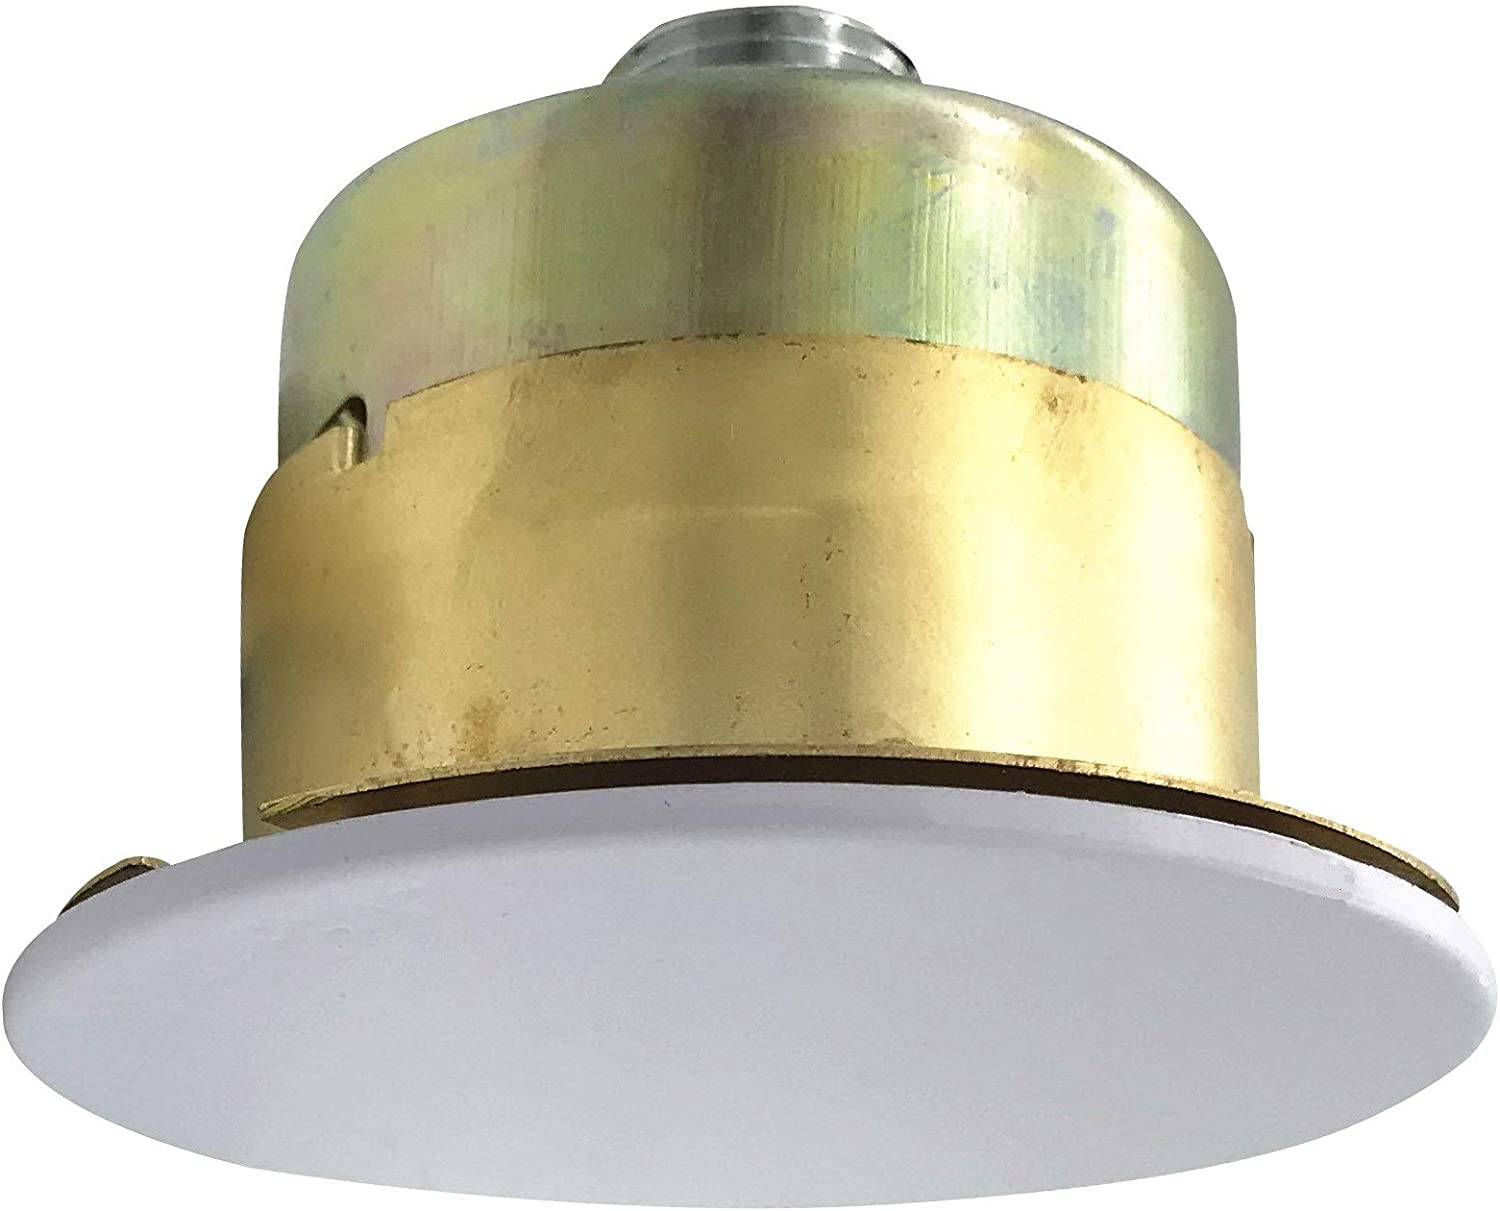 """TUNA UL & CUL Listed 1/2""""NPT Fire Sprinkler Head 155°F (68°C) Concealed Pendent Spray K80 Standard Response for Automatic Fire sprinkler System Concealed Head with White Cover Plate"""